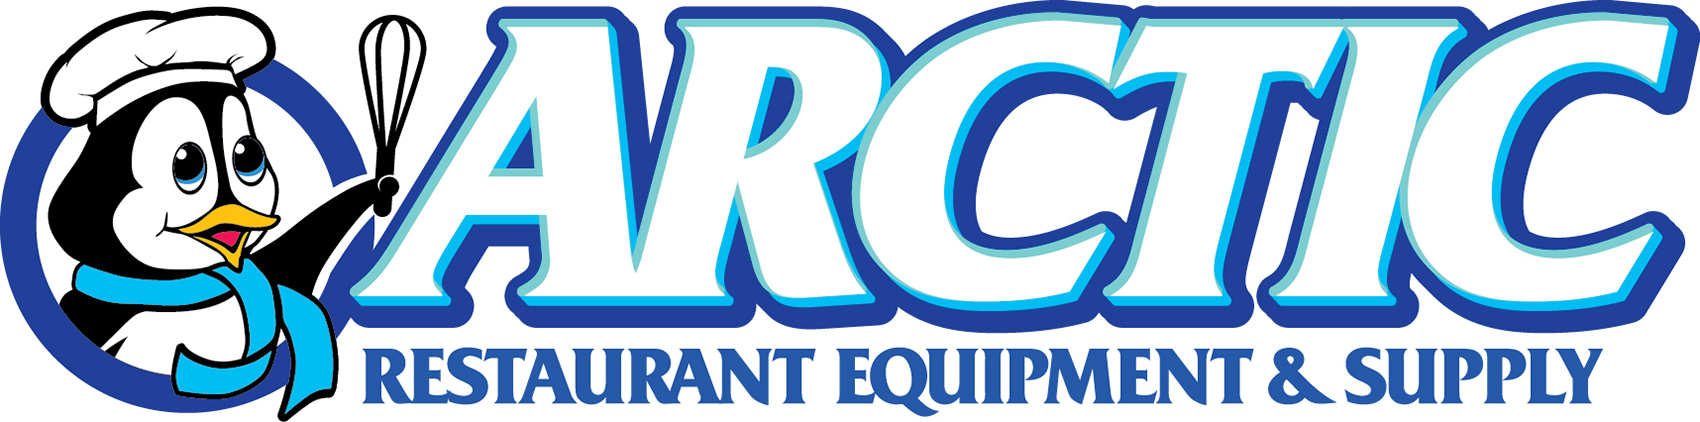 Arctic Restaurant & Supply